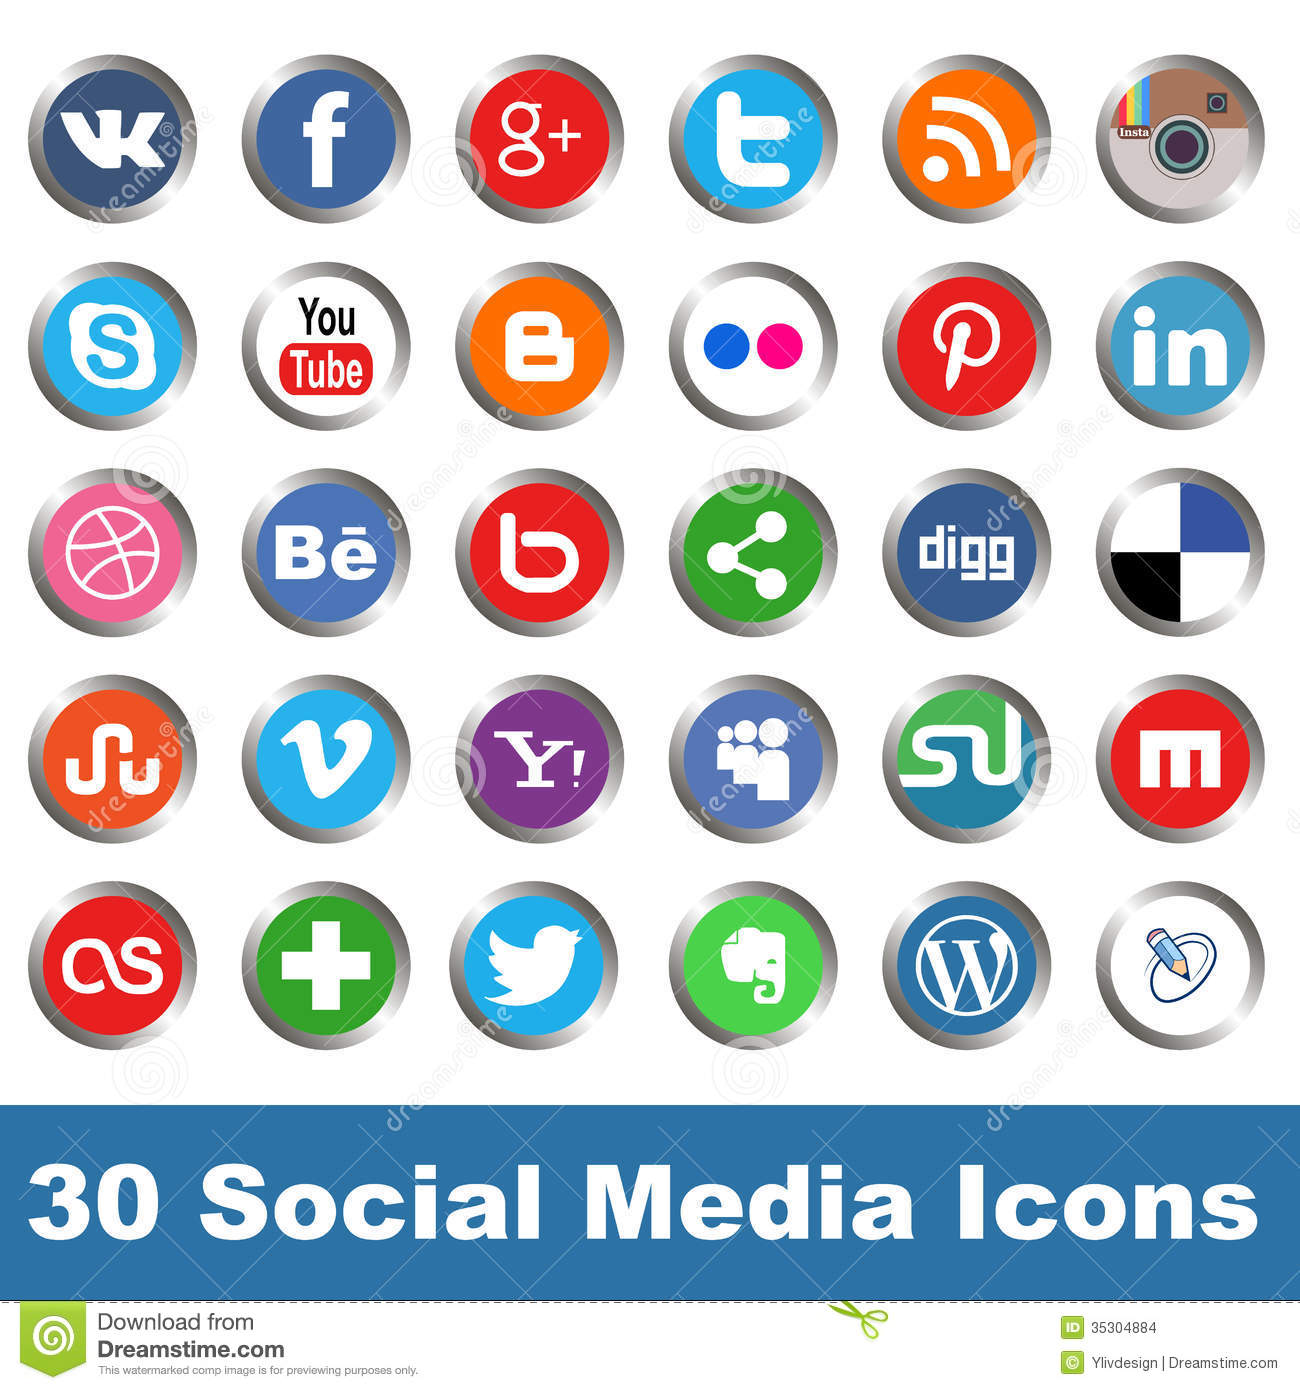 Social media clipart vector clip art library download Vimeo Stock Illustrations – 210 Vimeo Stock Illustrations, Vectors ... clip art library download